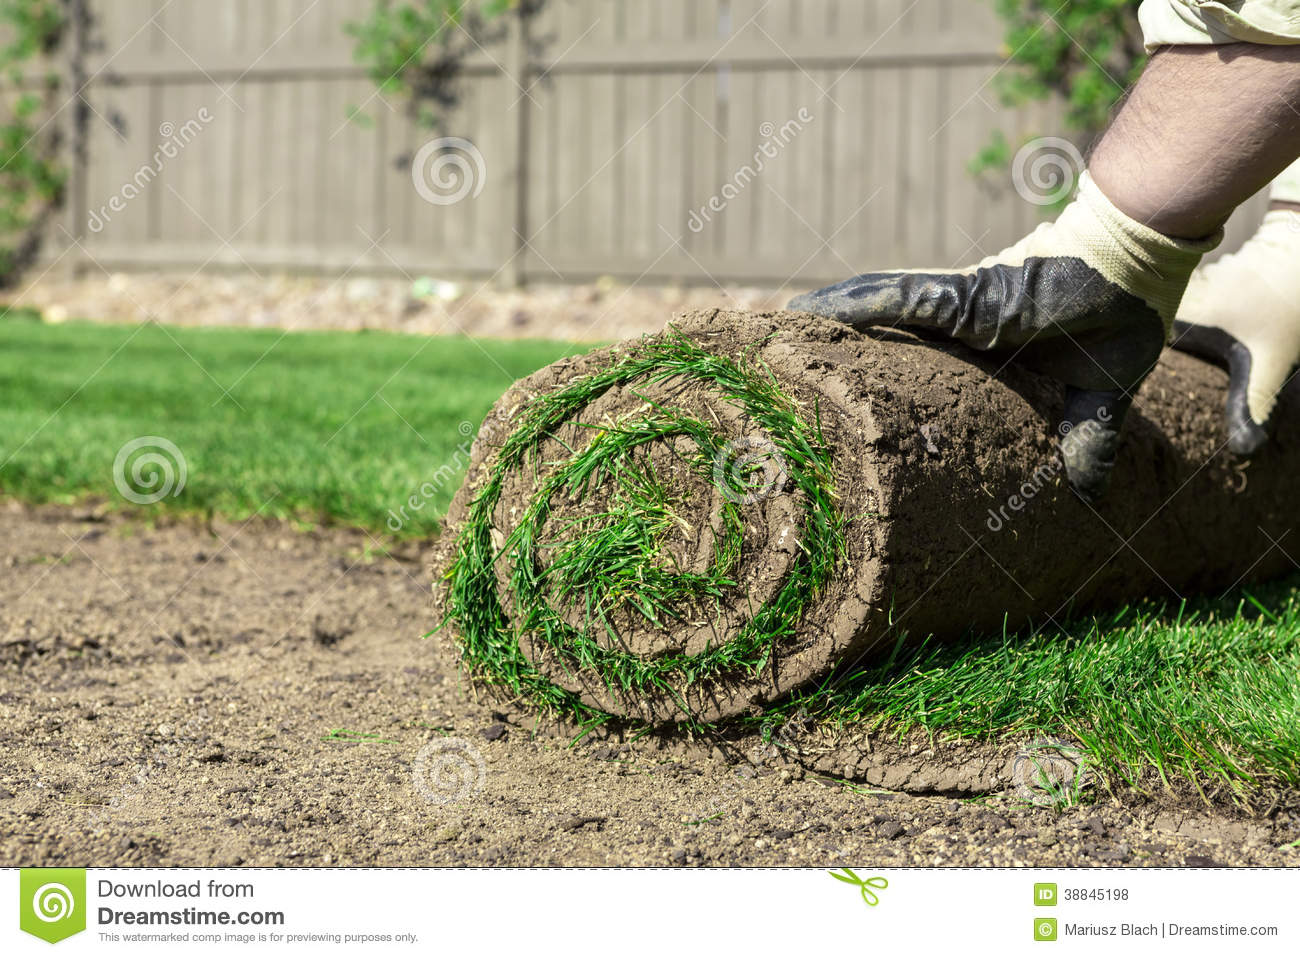 Roll of sod